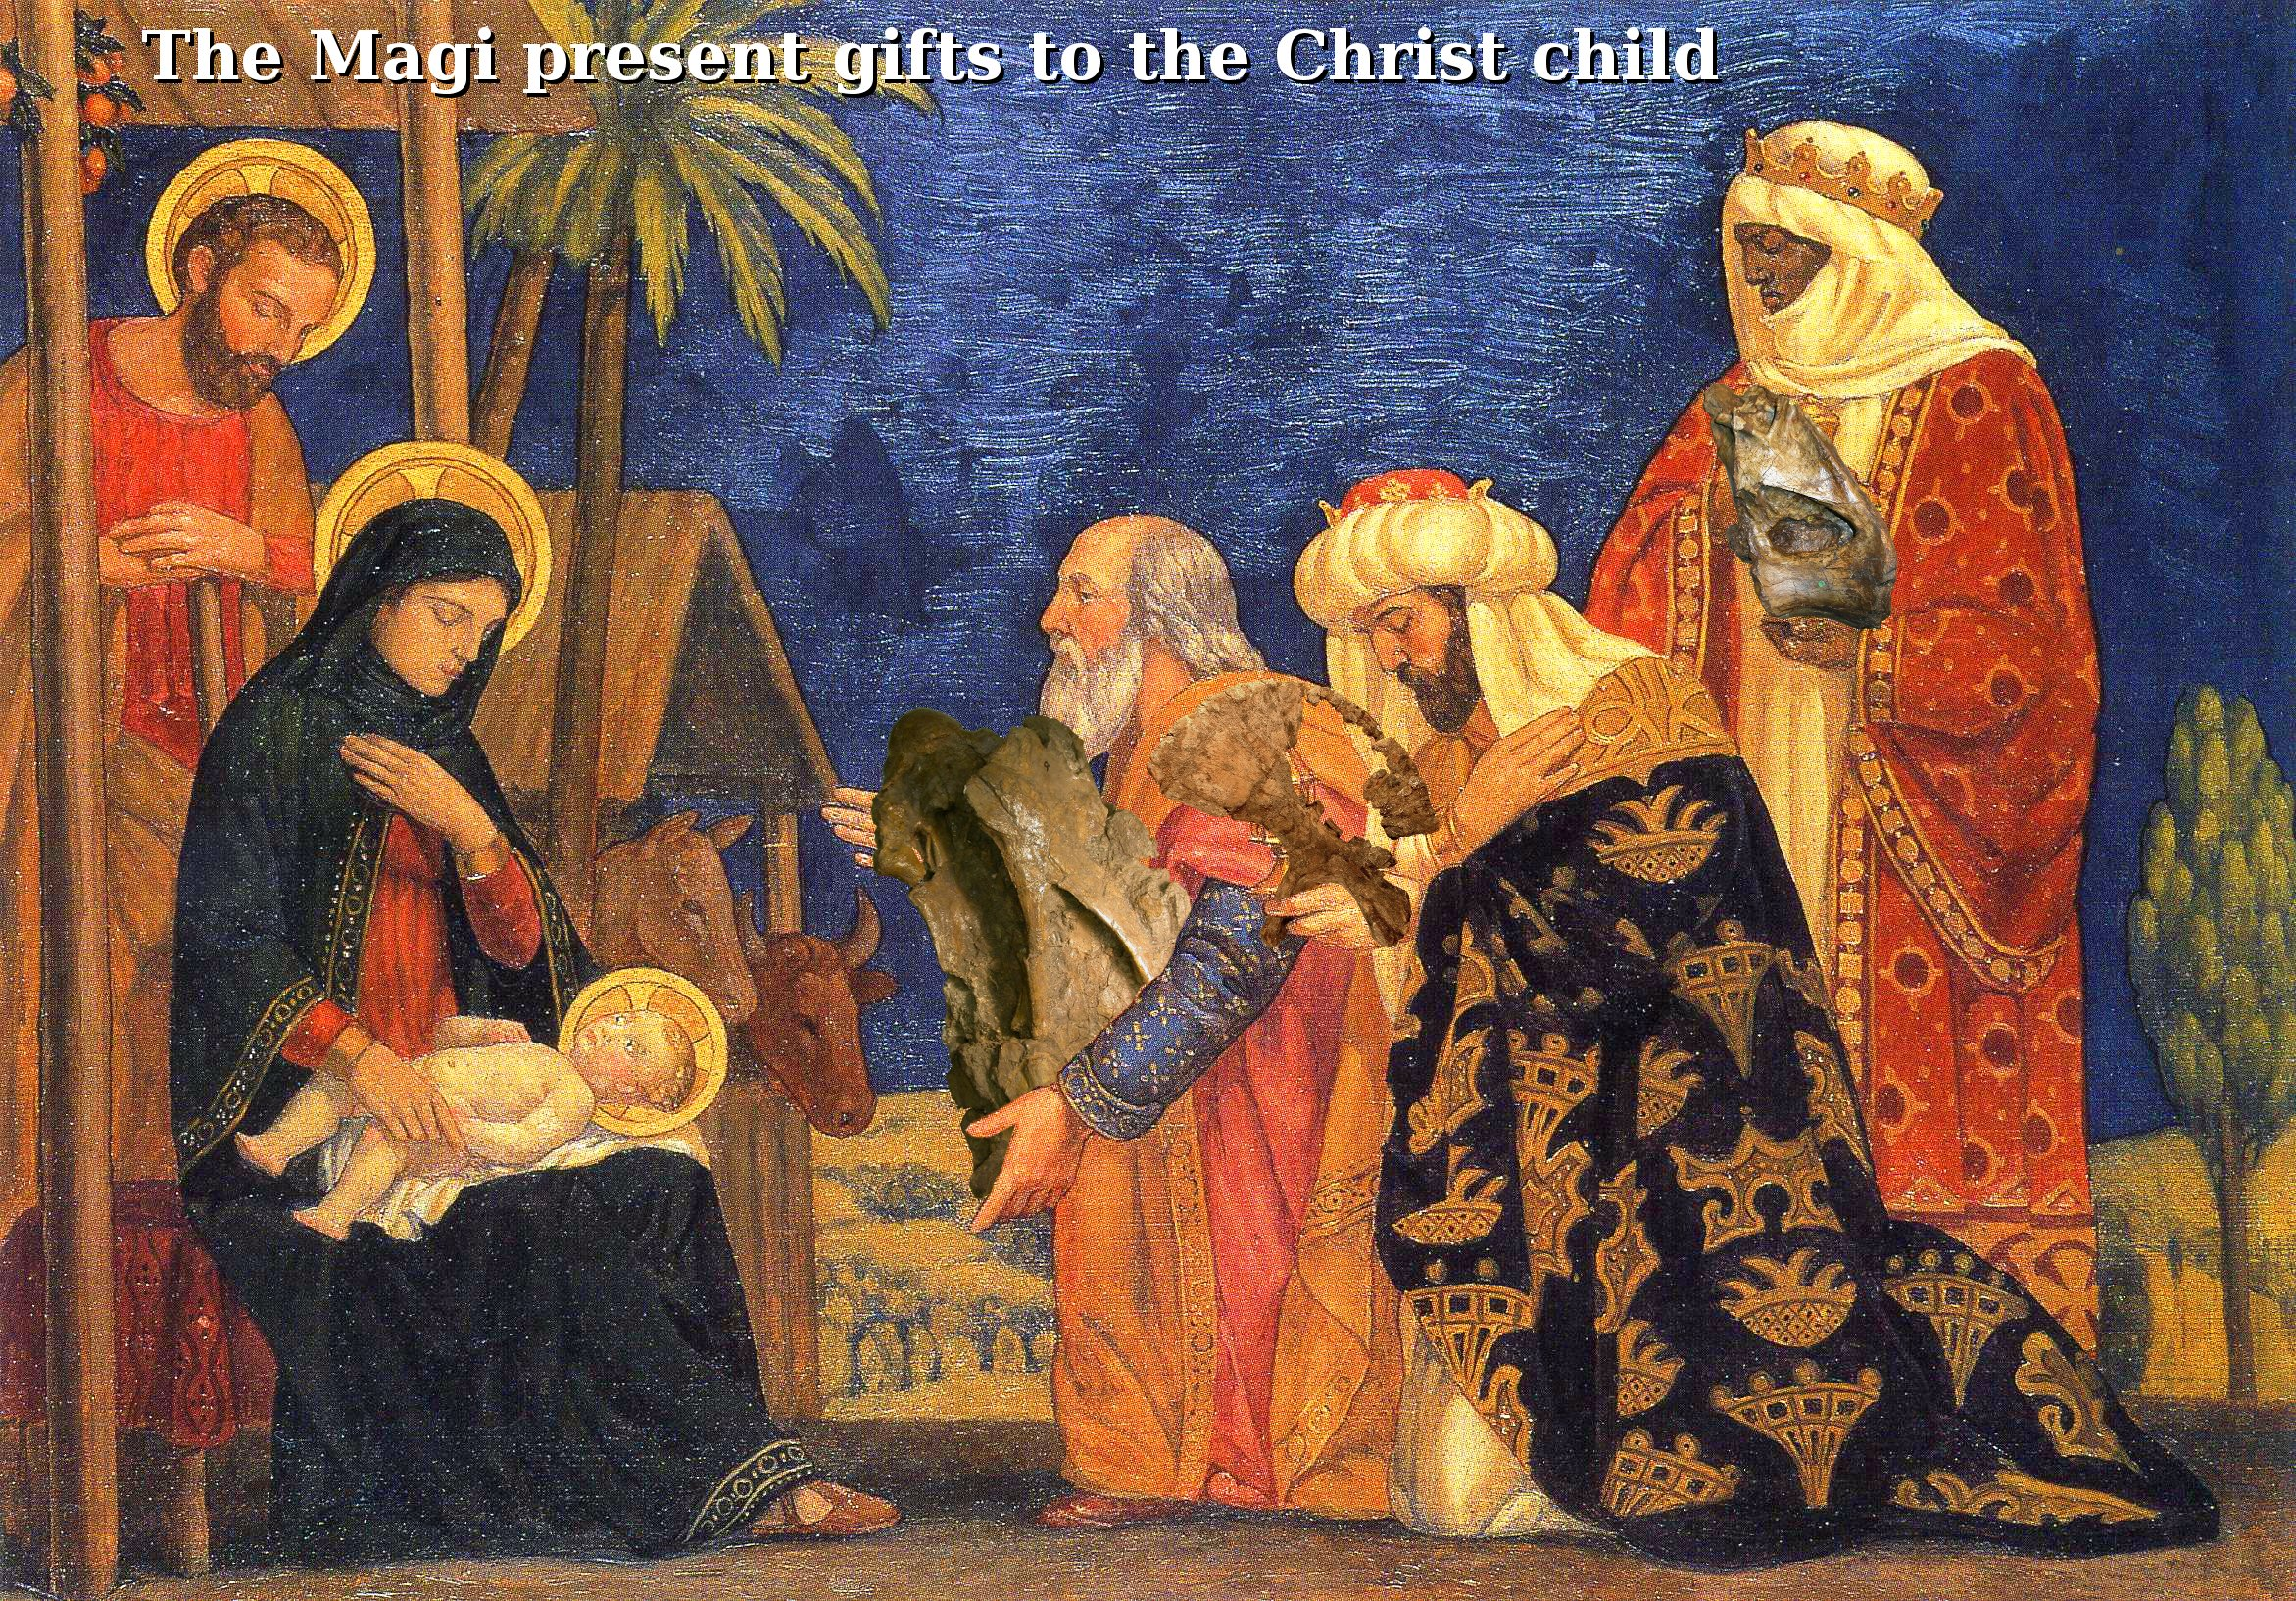 The Magi present gifts to the Christ child